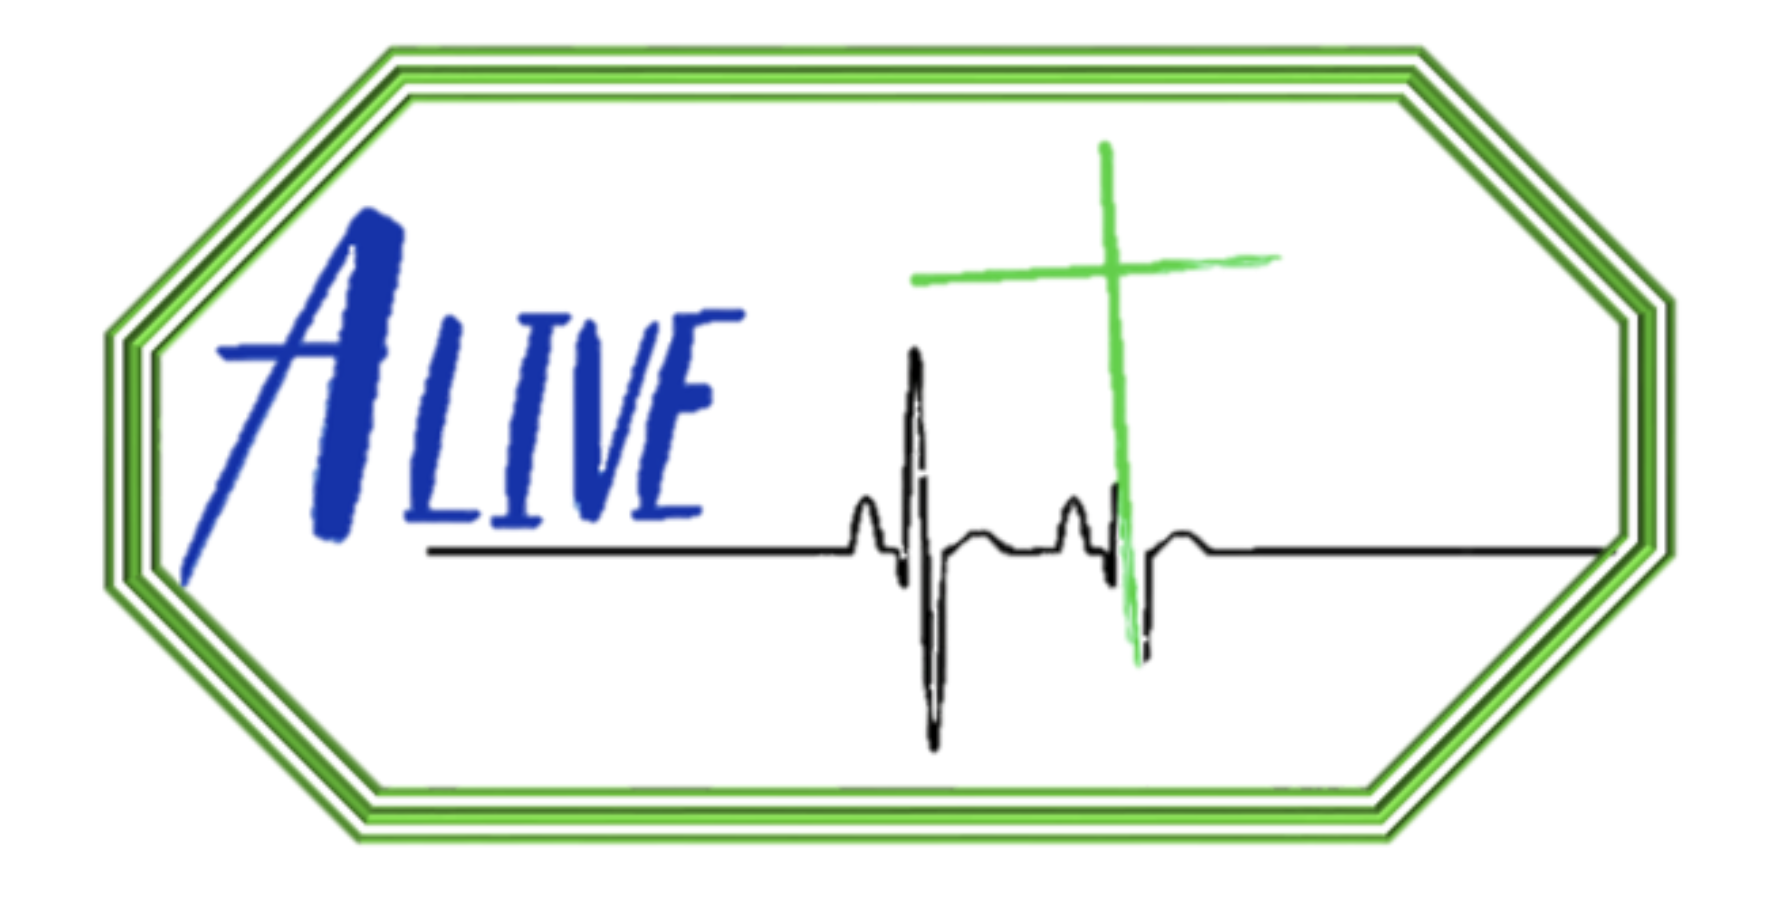 Alive - May 13, 2018 - July 1, 2018